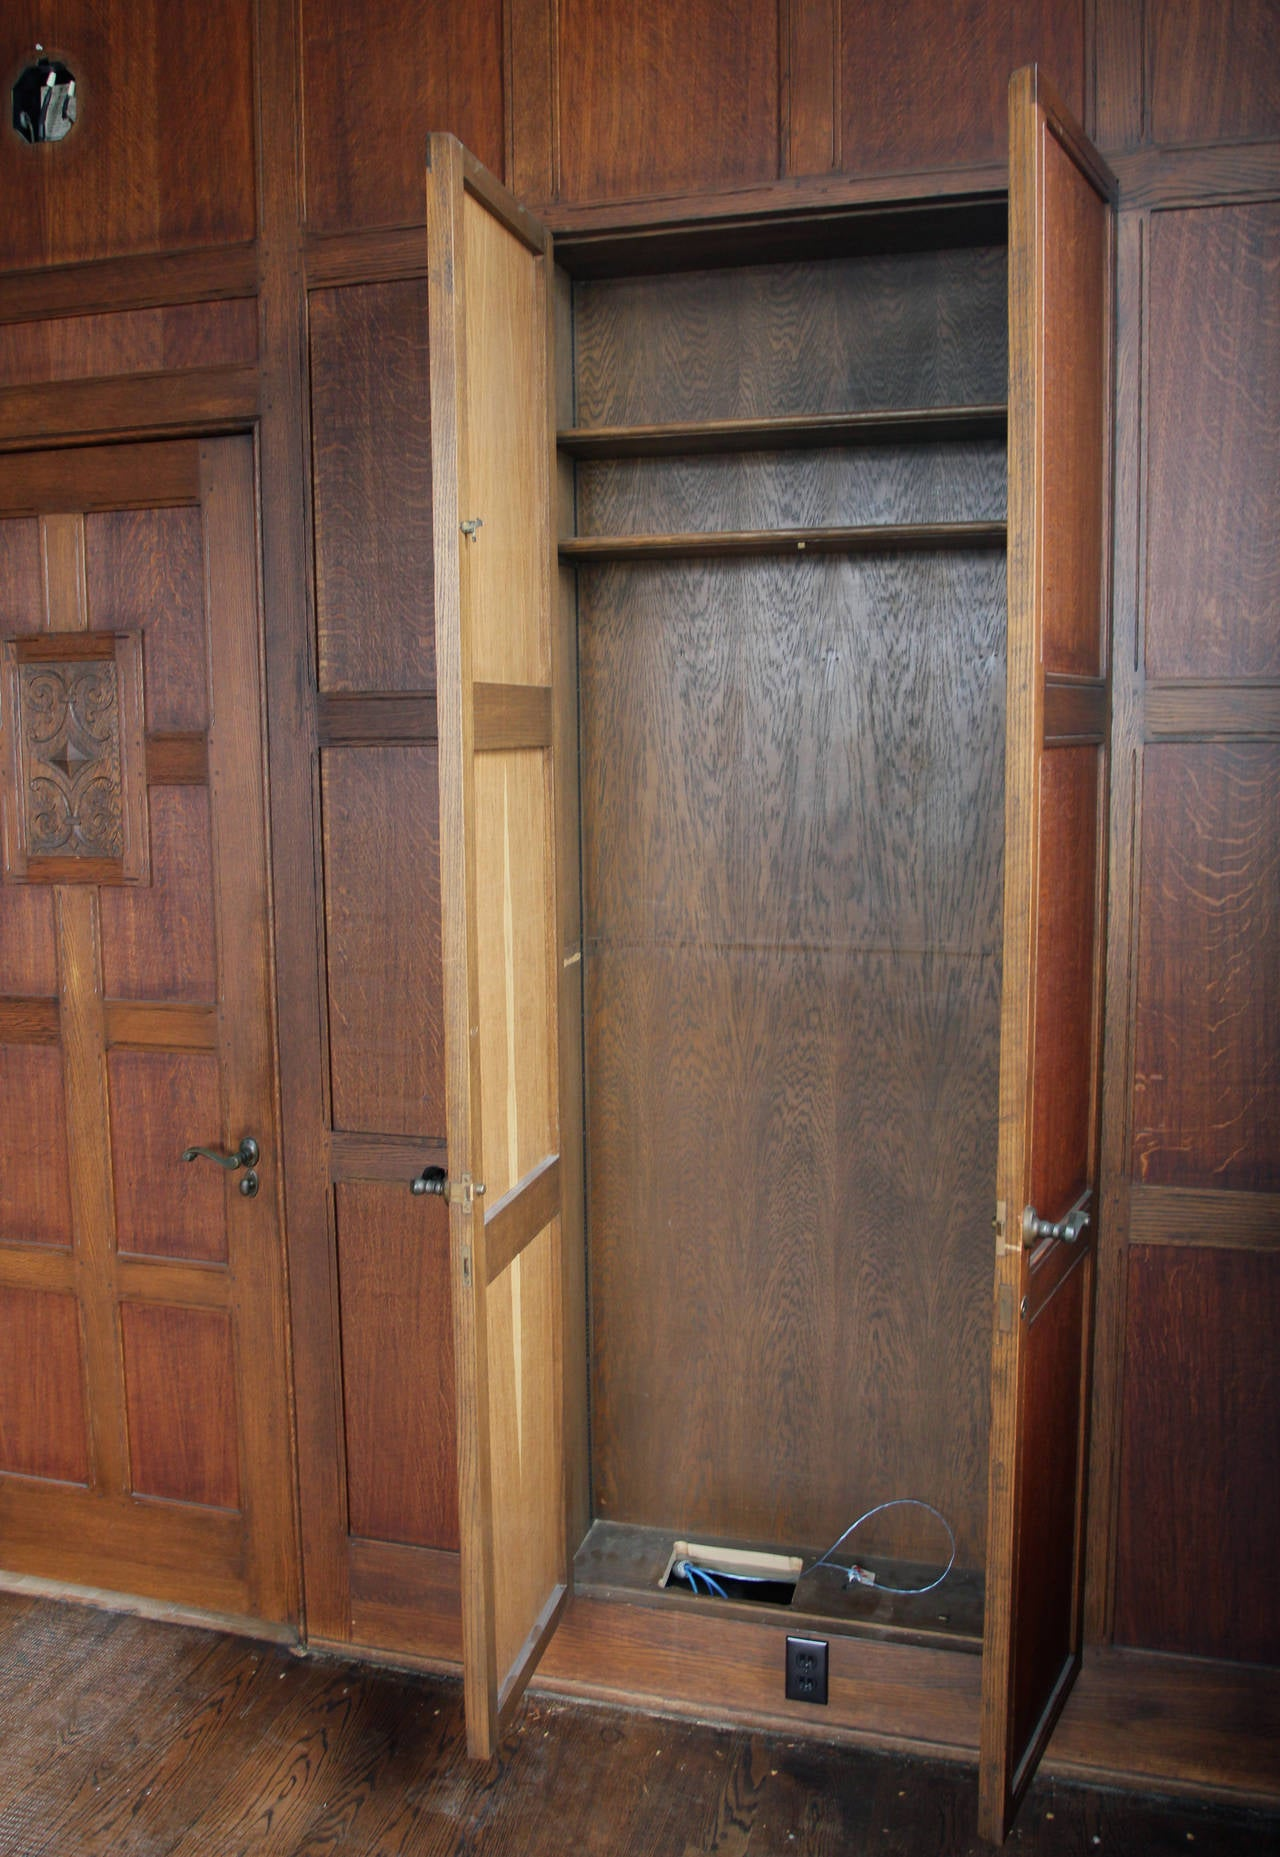 Oak Paneled Room: 1905 Recessed Solid English Oak Paneled Room From Two